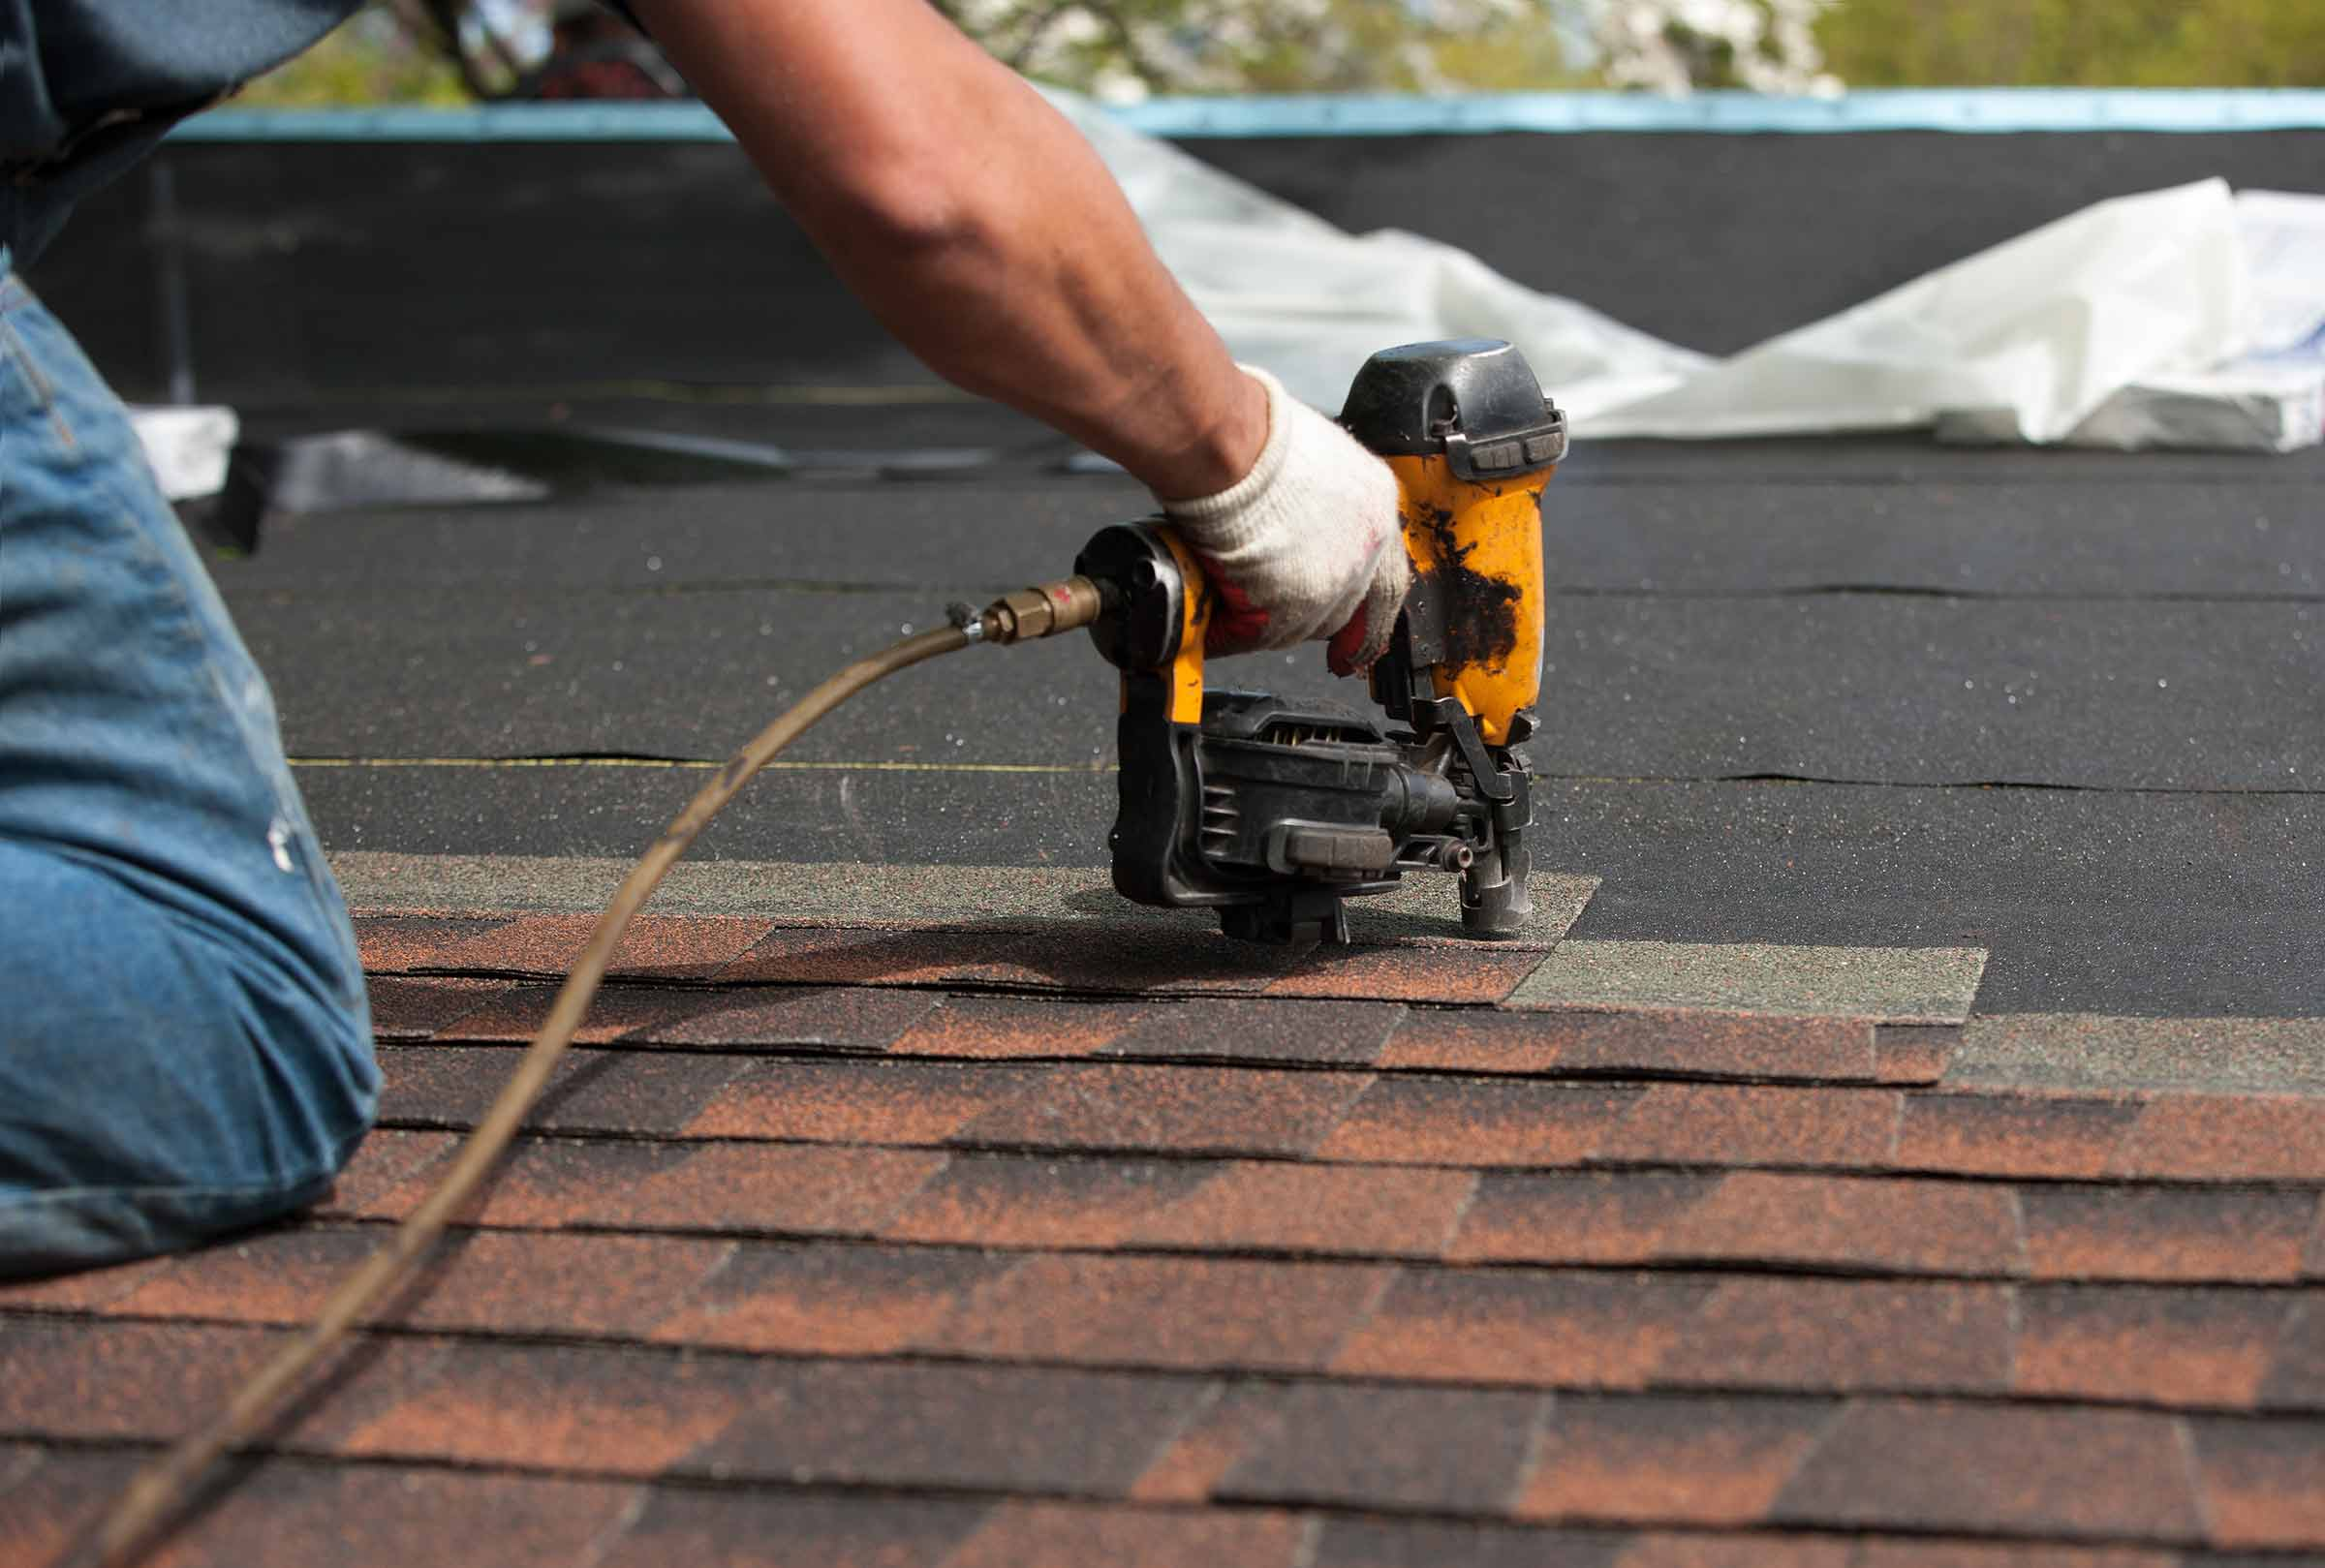 Getting the Best Help from a Roofing Contractor